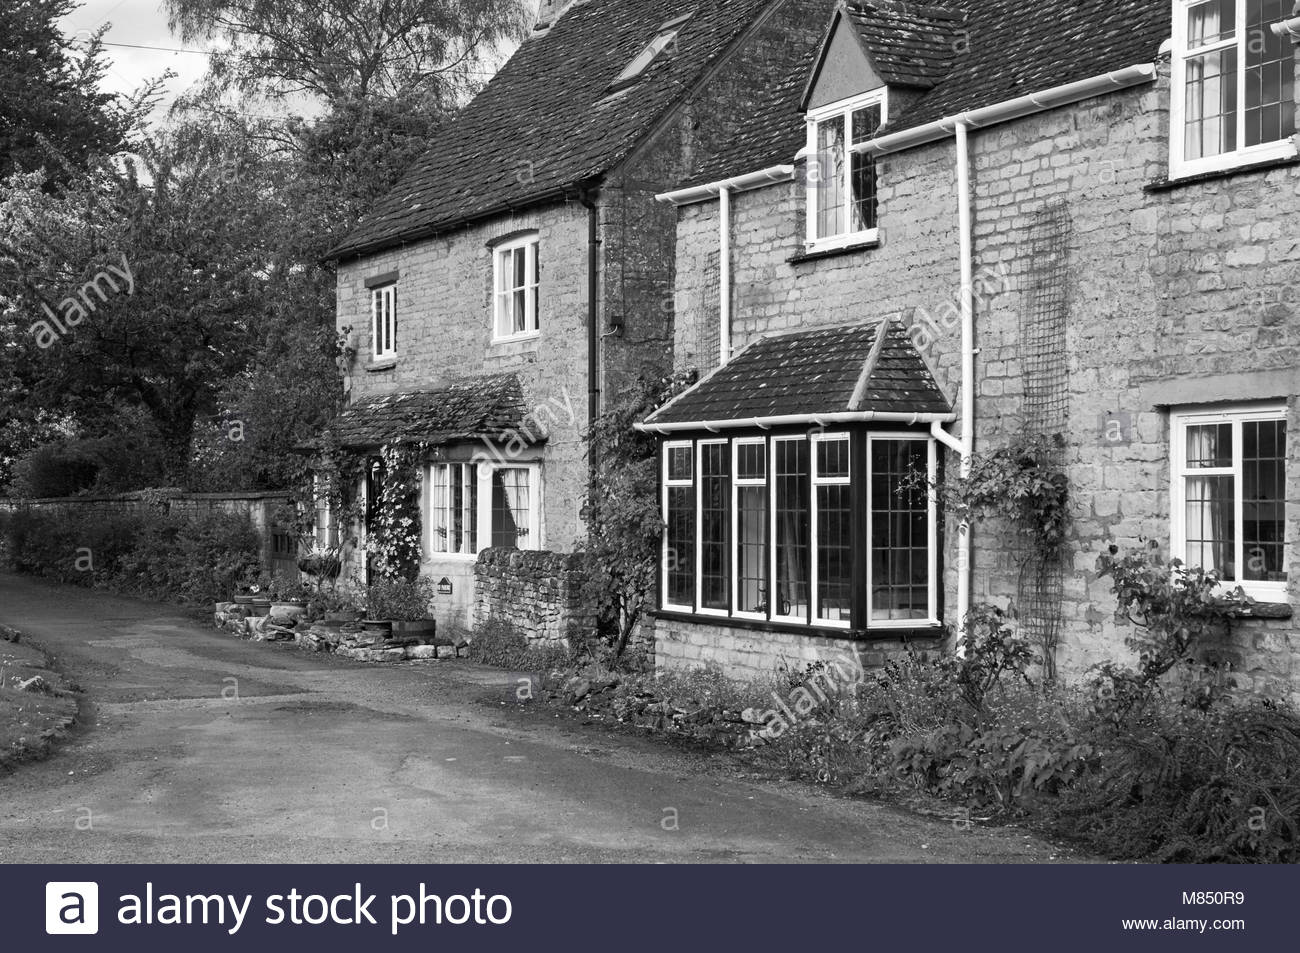 Cotswold stone cottages in bourton on the water england uk - Stock Image